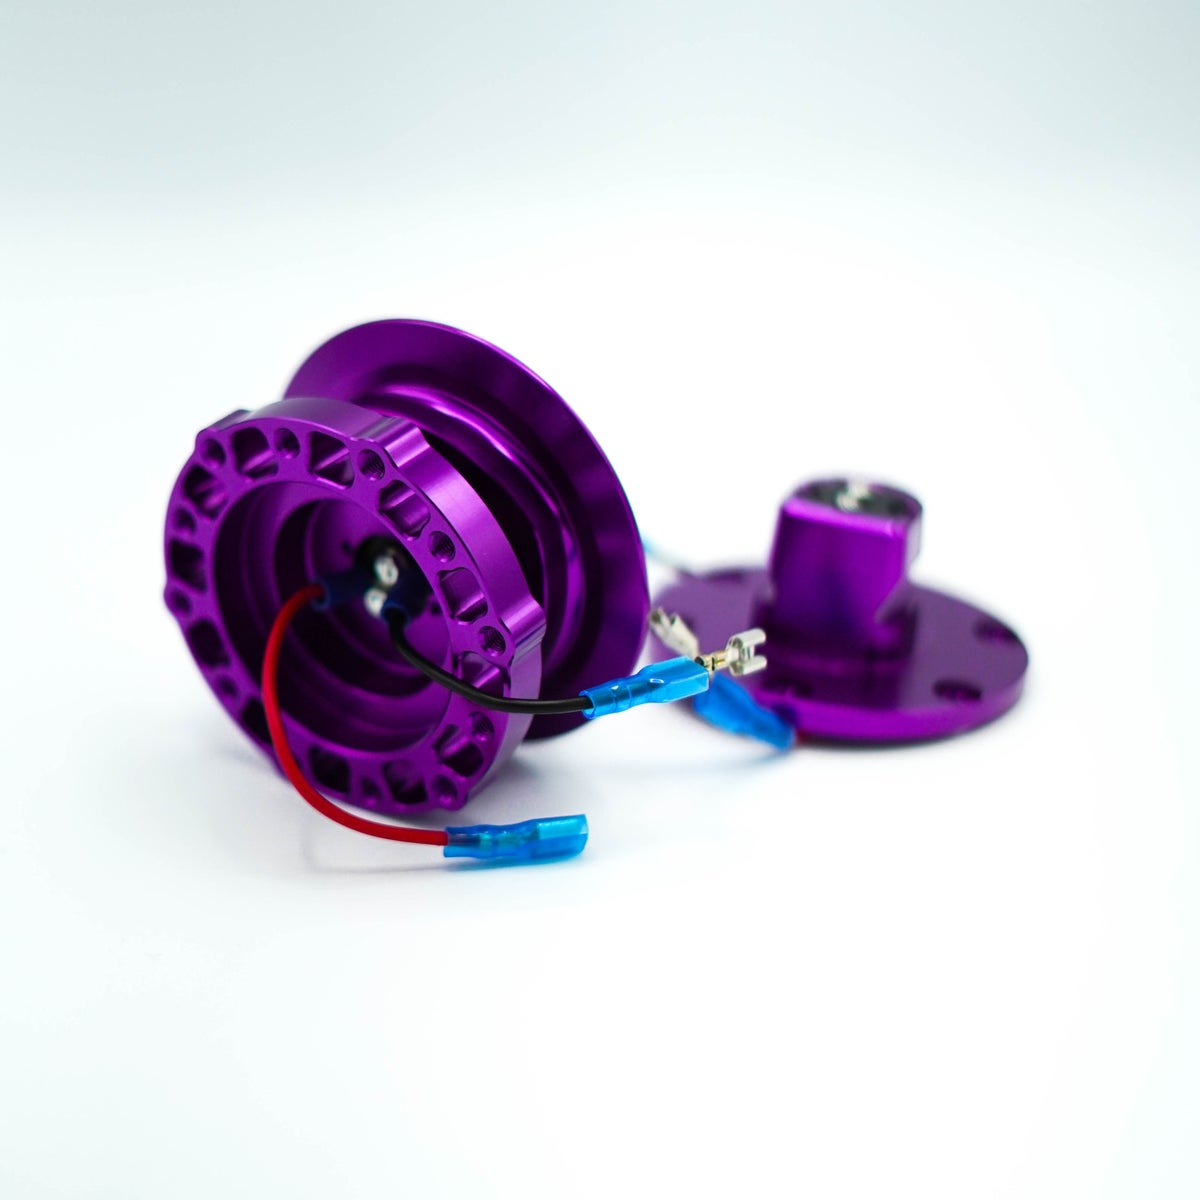 Image of Dodeca Quick Release Hub